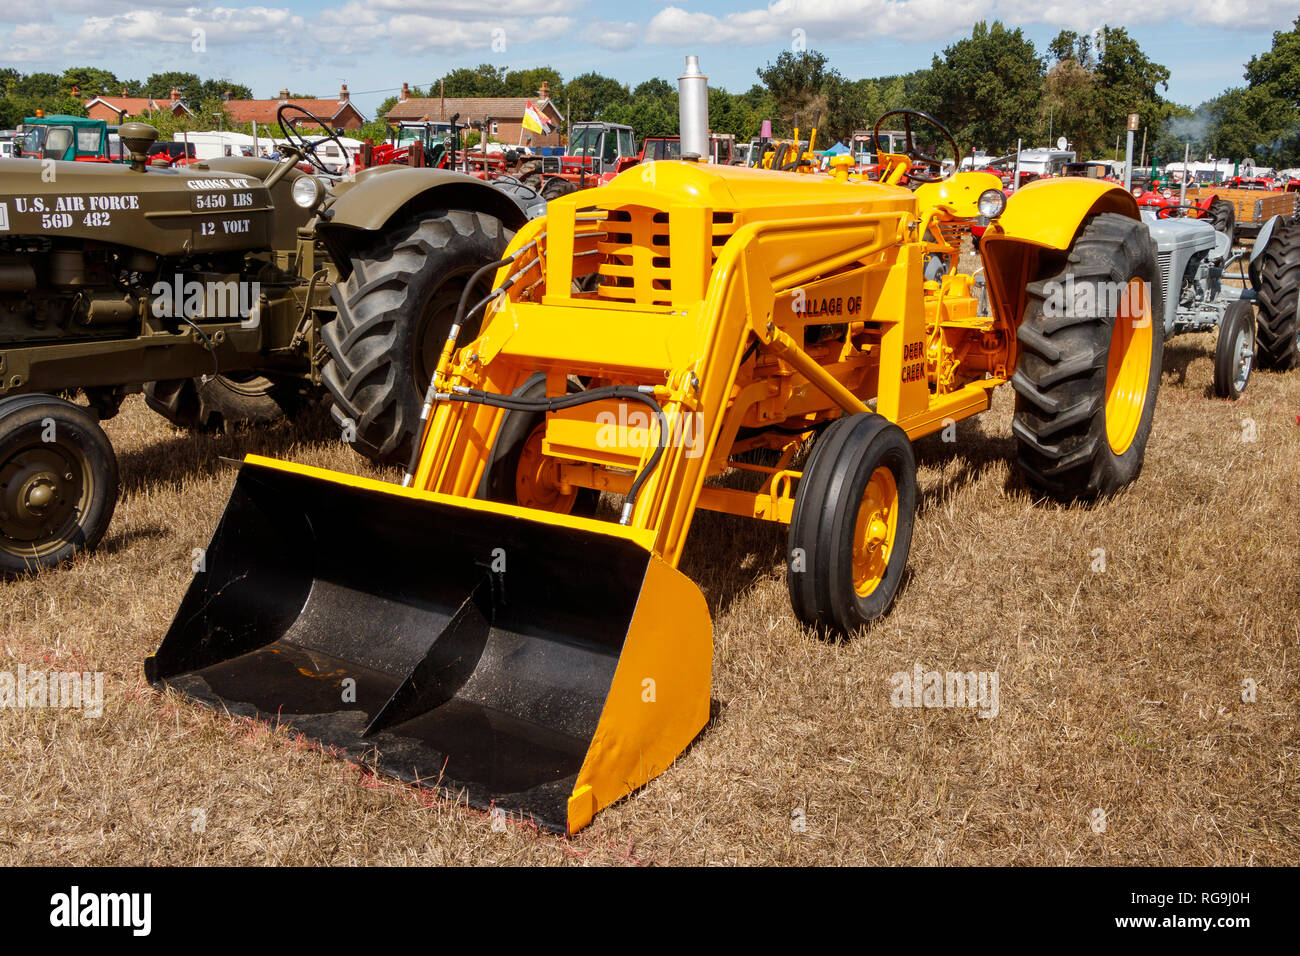 1956 Massey Harris 12449 IND with hydraulic earth moving attachment on display at the 2018 Starting Handle Club Summer Show, Norfolk, UK. - Stock Image